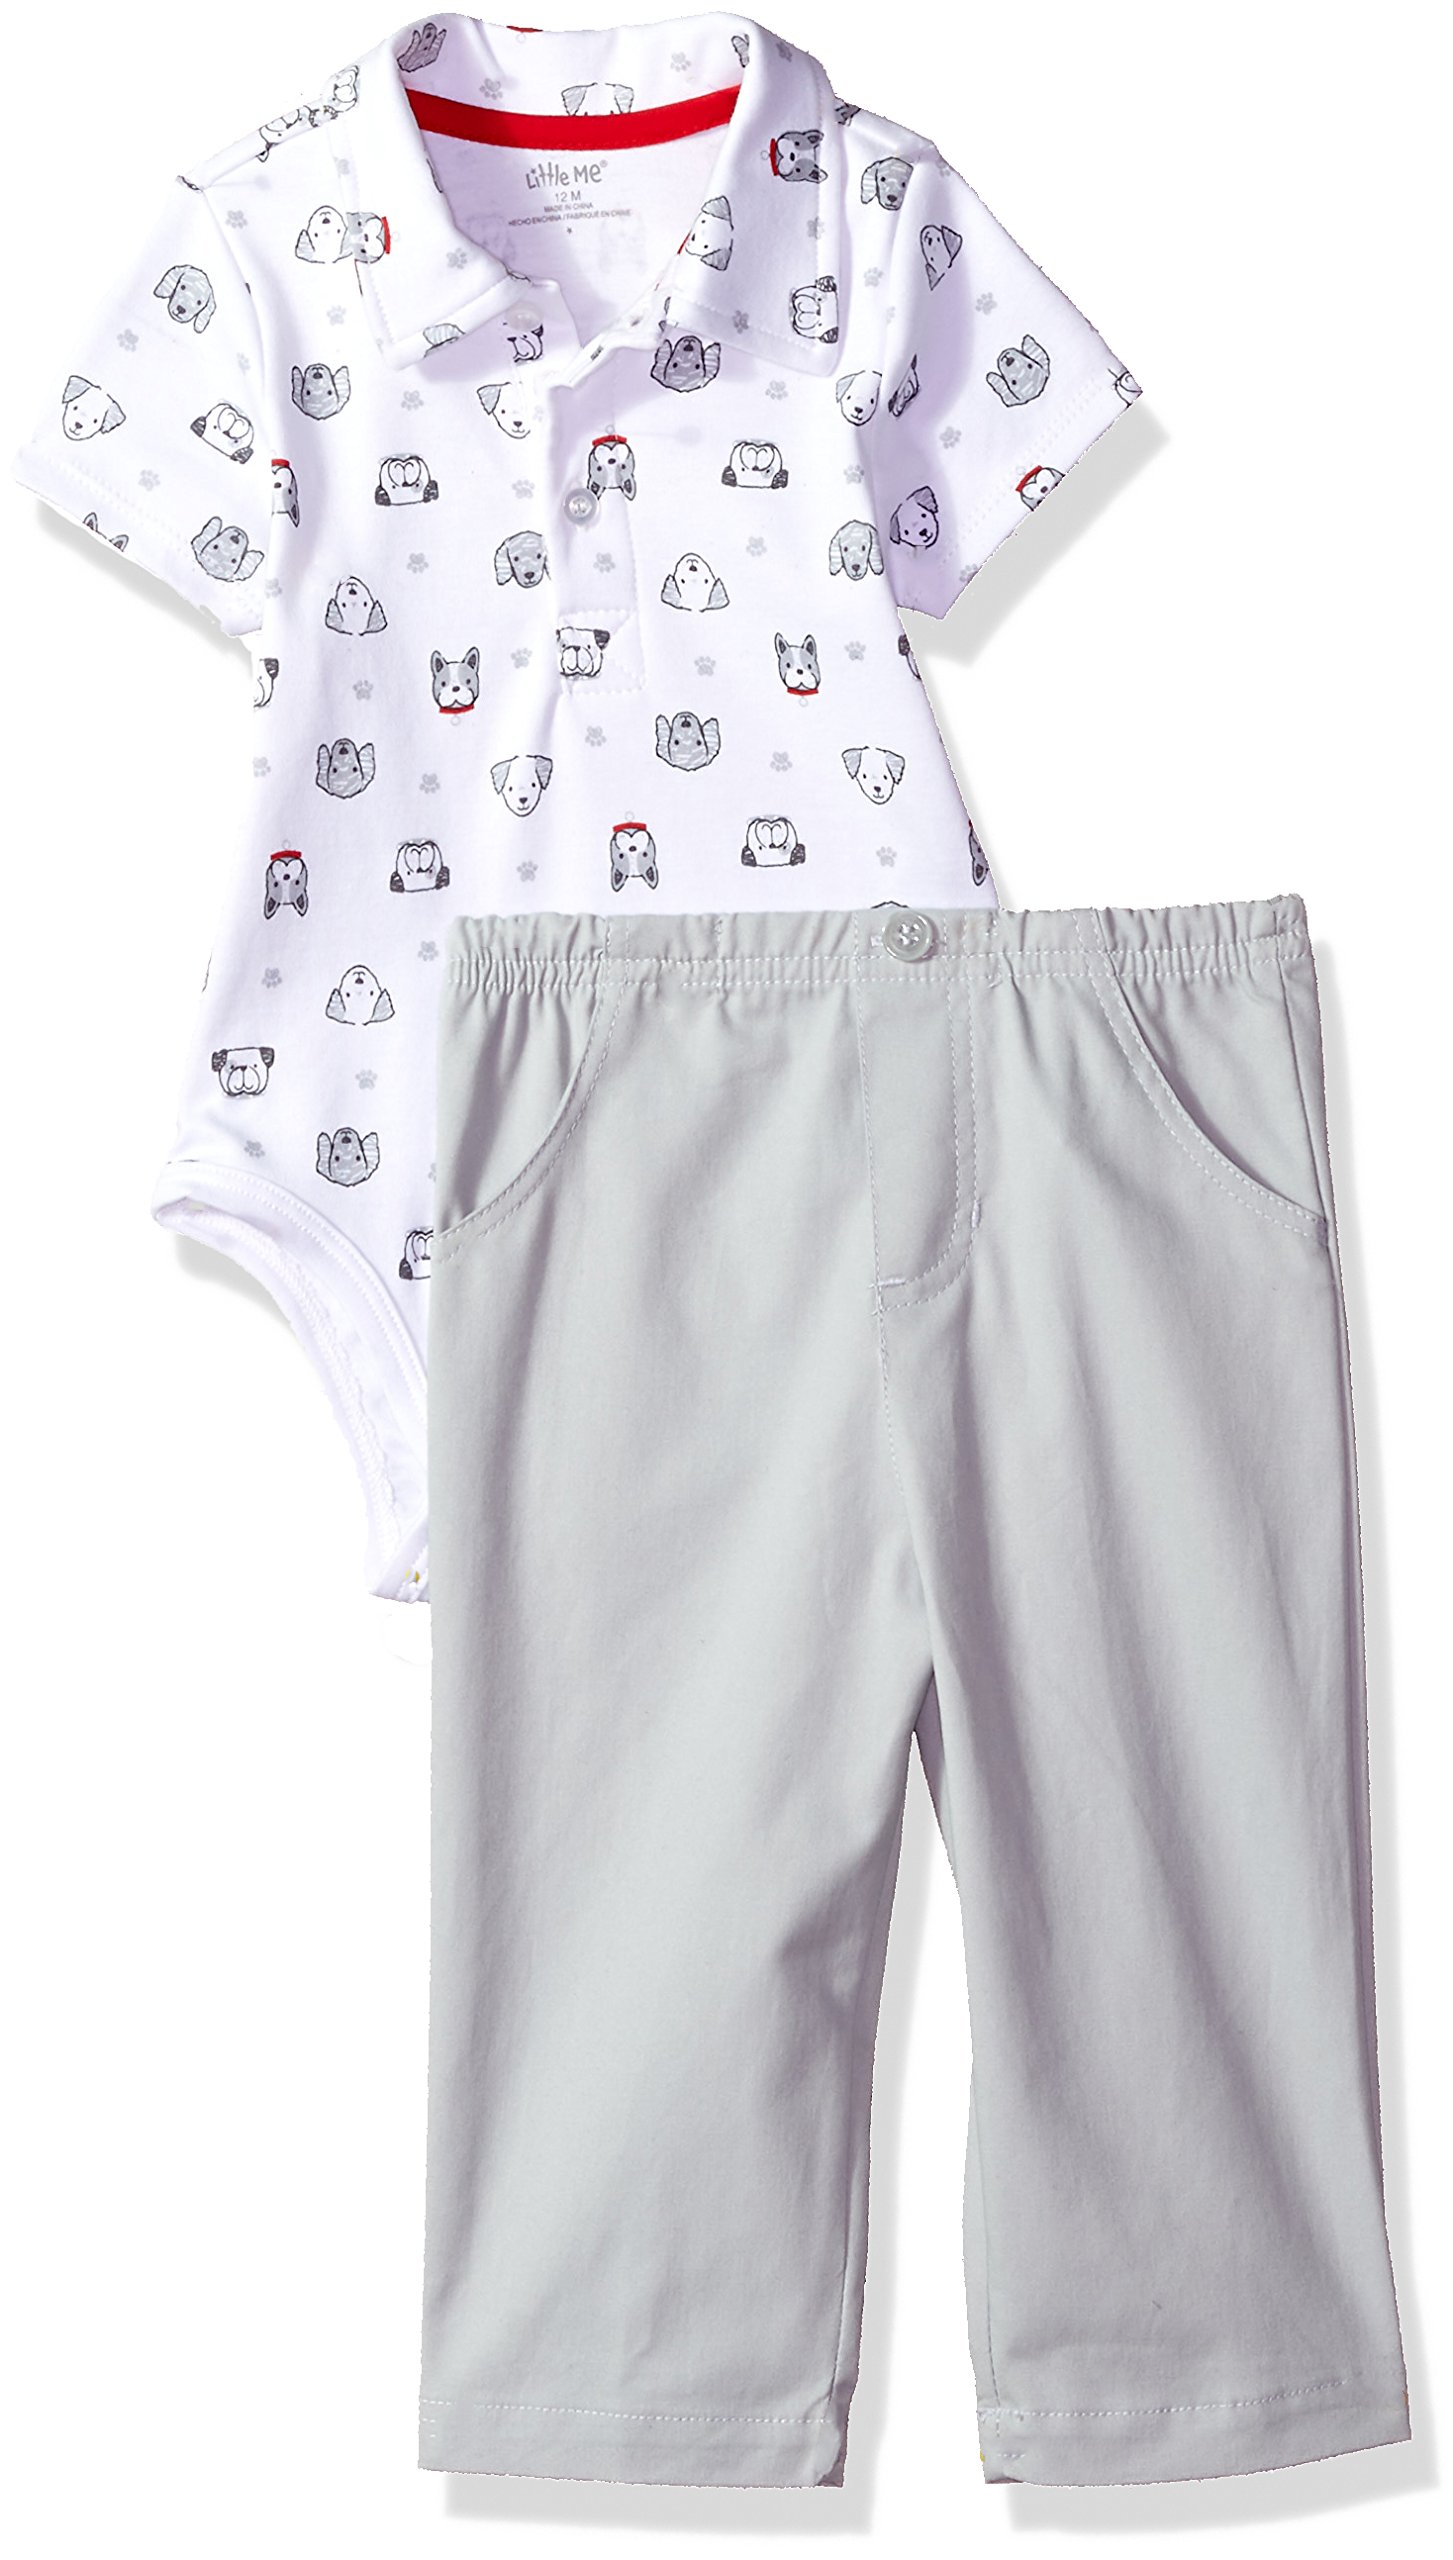 Little Me Baby Boys' Polo Pant Set